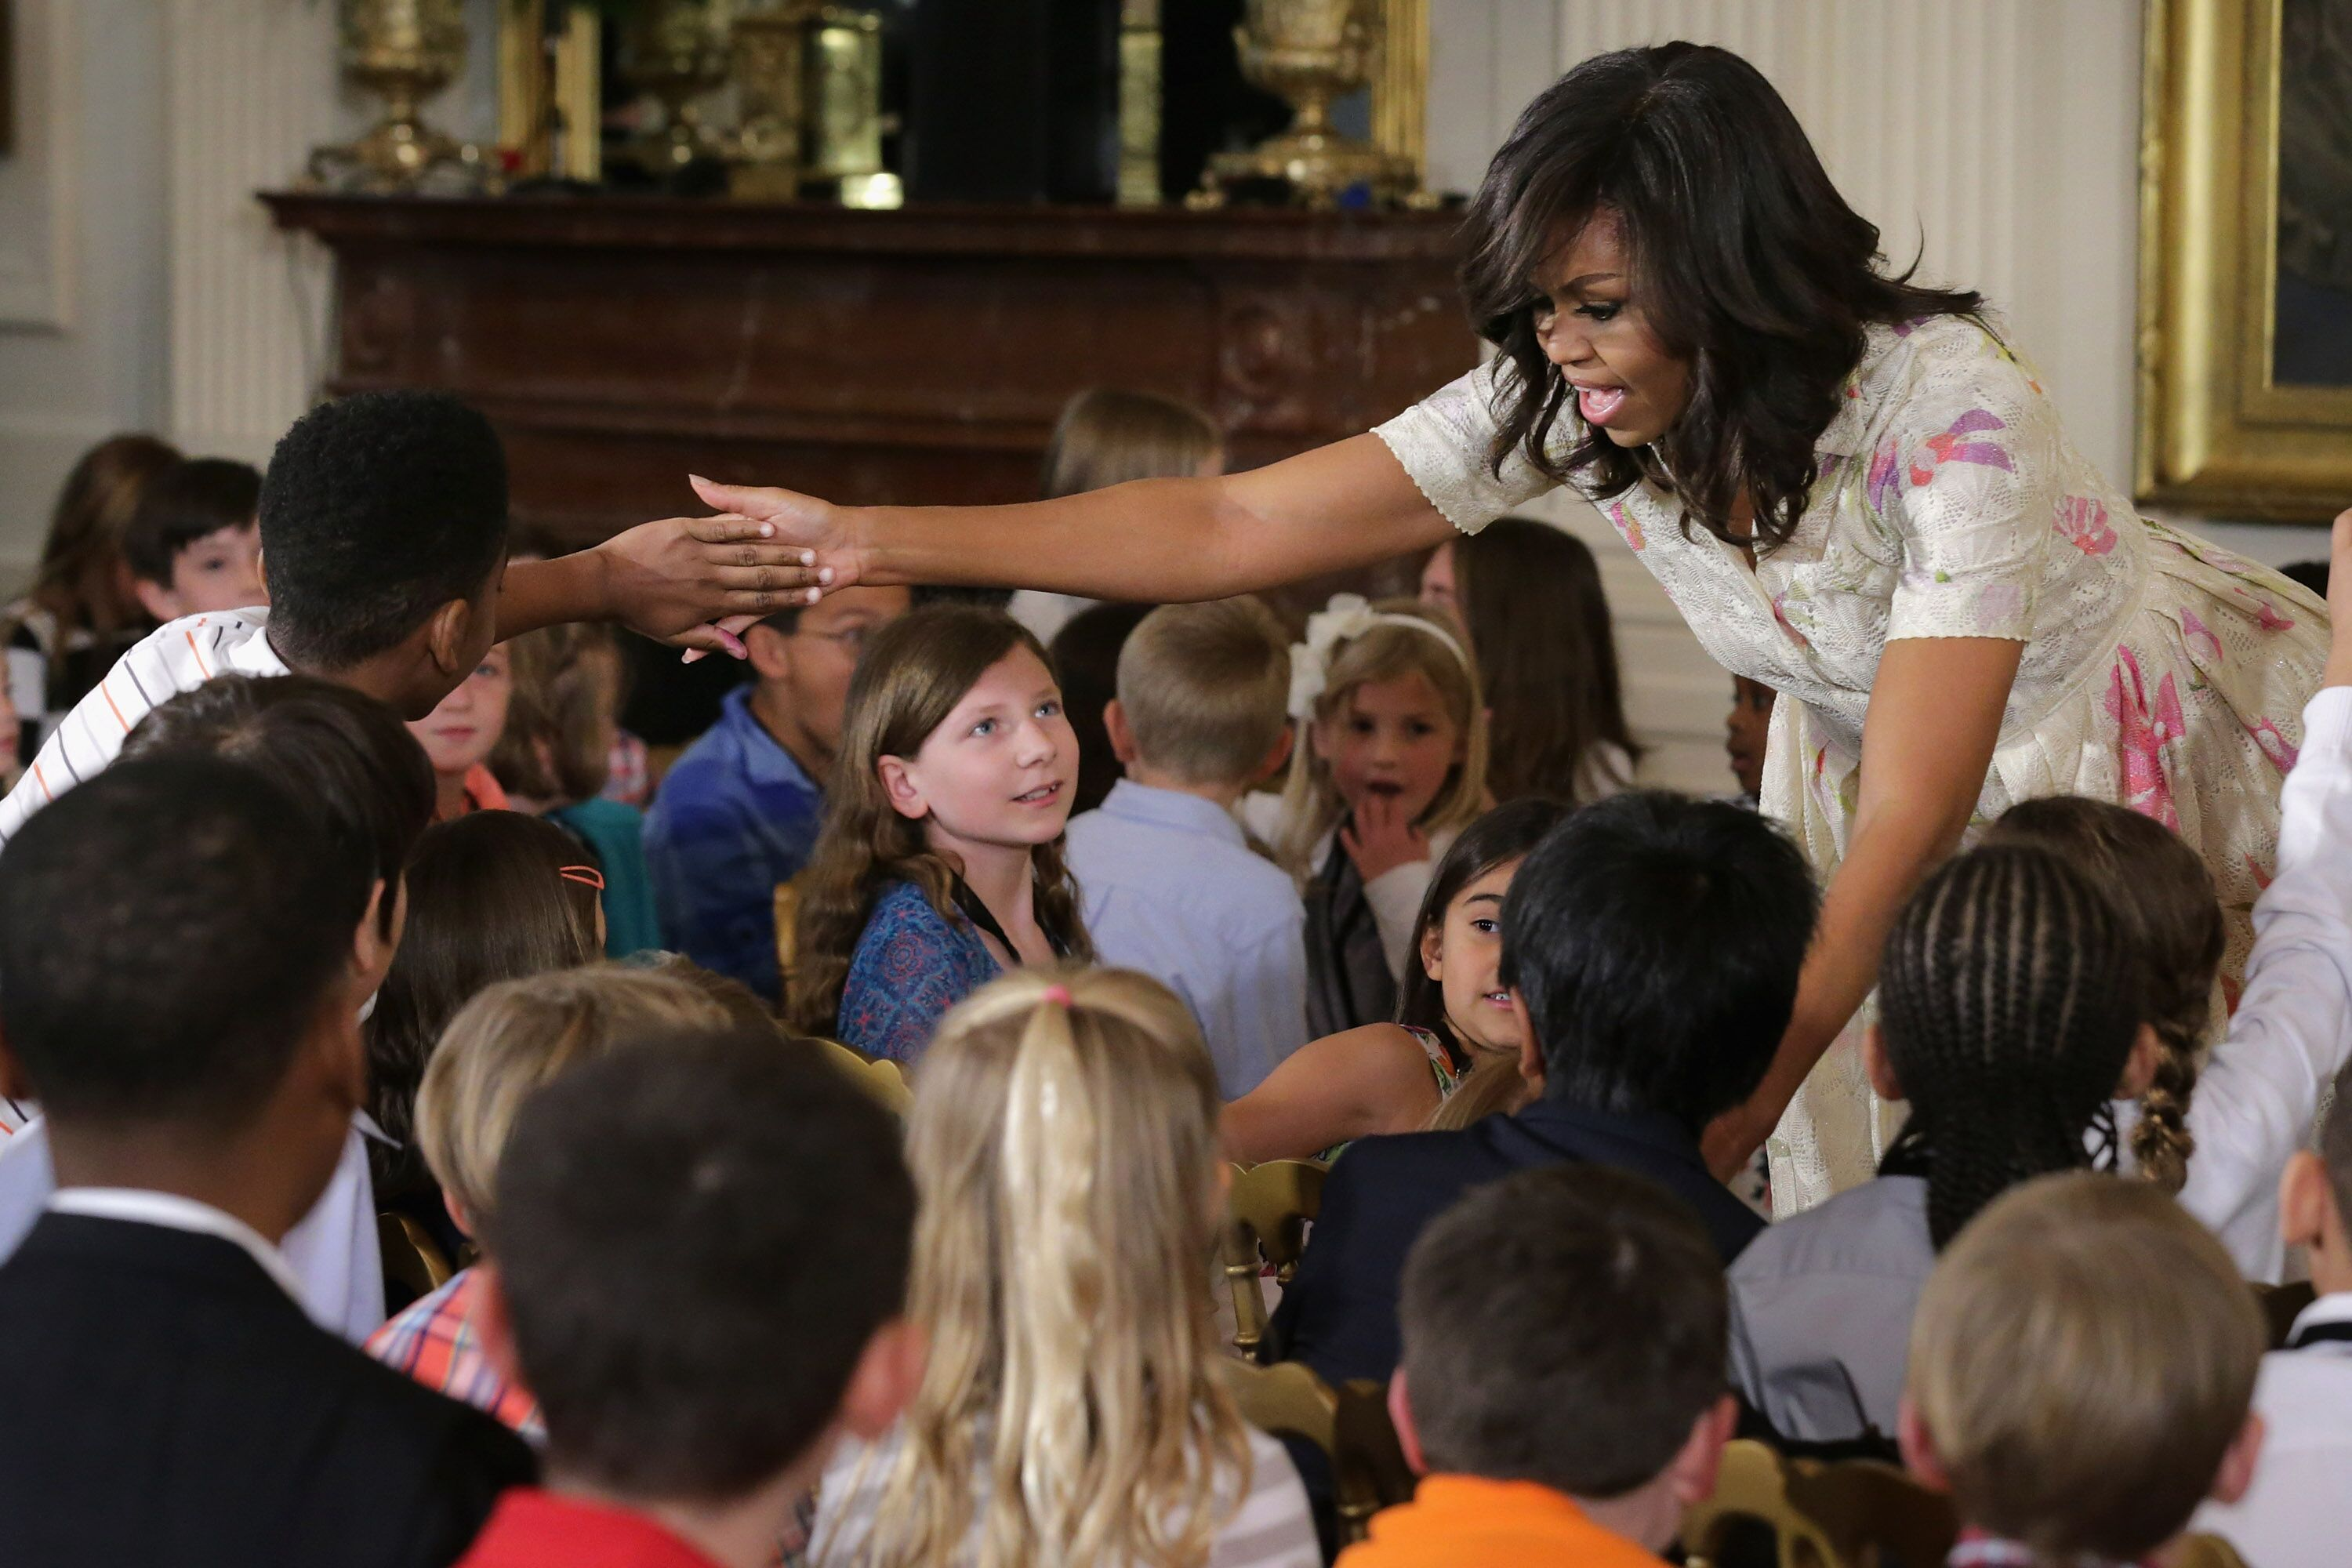 Michelle Obama gives hugs and high-fives to children for Take Our Daughters and Sons to Work Day in the East Room of the White House April 20, 2016 in Washington, DC. | Photo: Getty Images